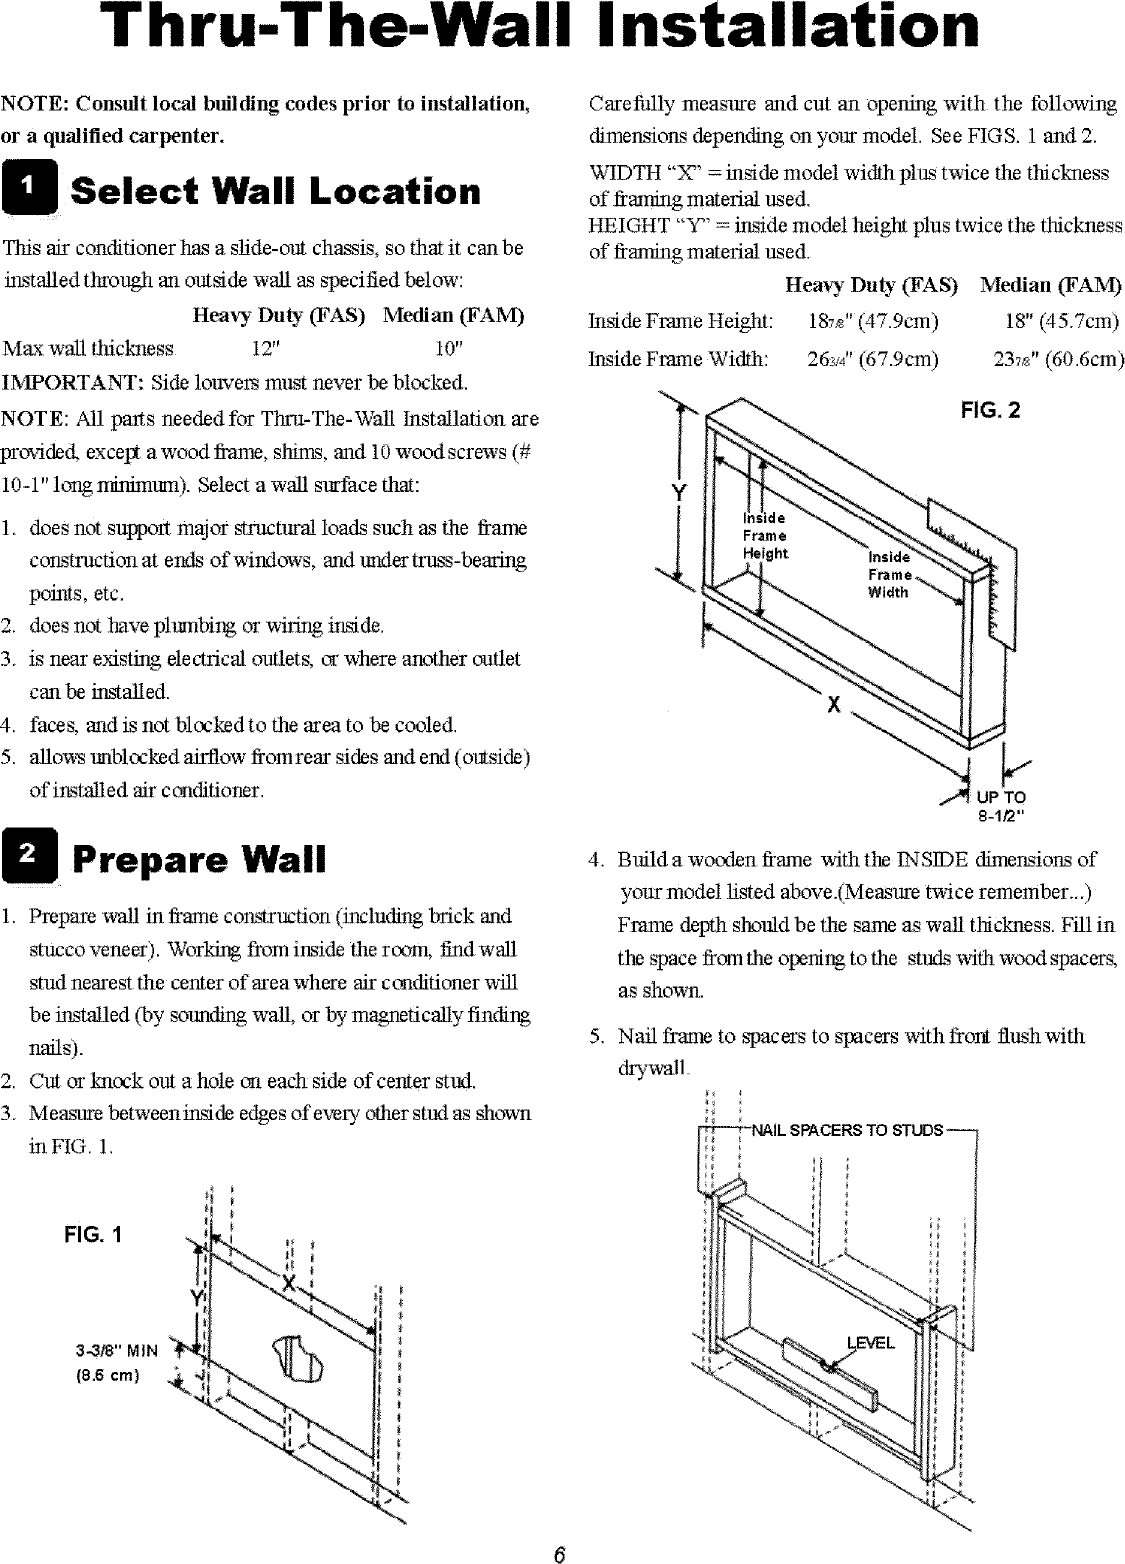 Gibson Gam154q1a1 User Manual Air Conditioner Manuals And Handler Wiring Schematic Page 6 Of 8